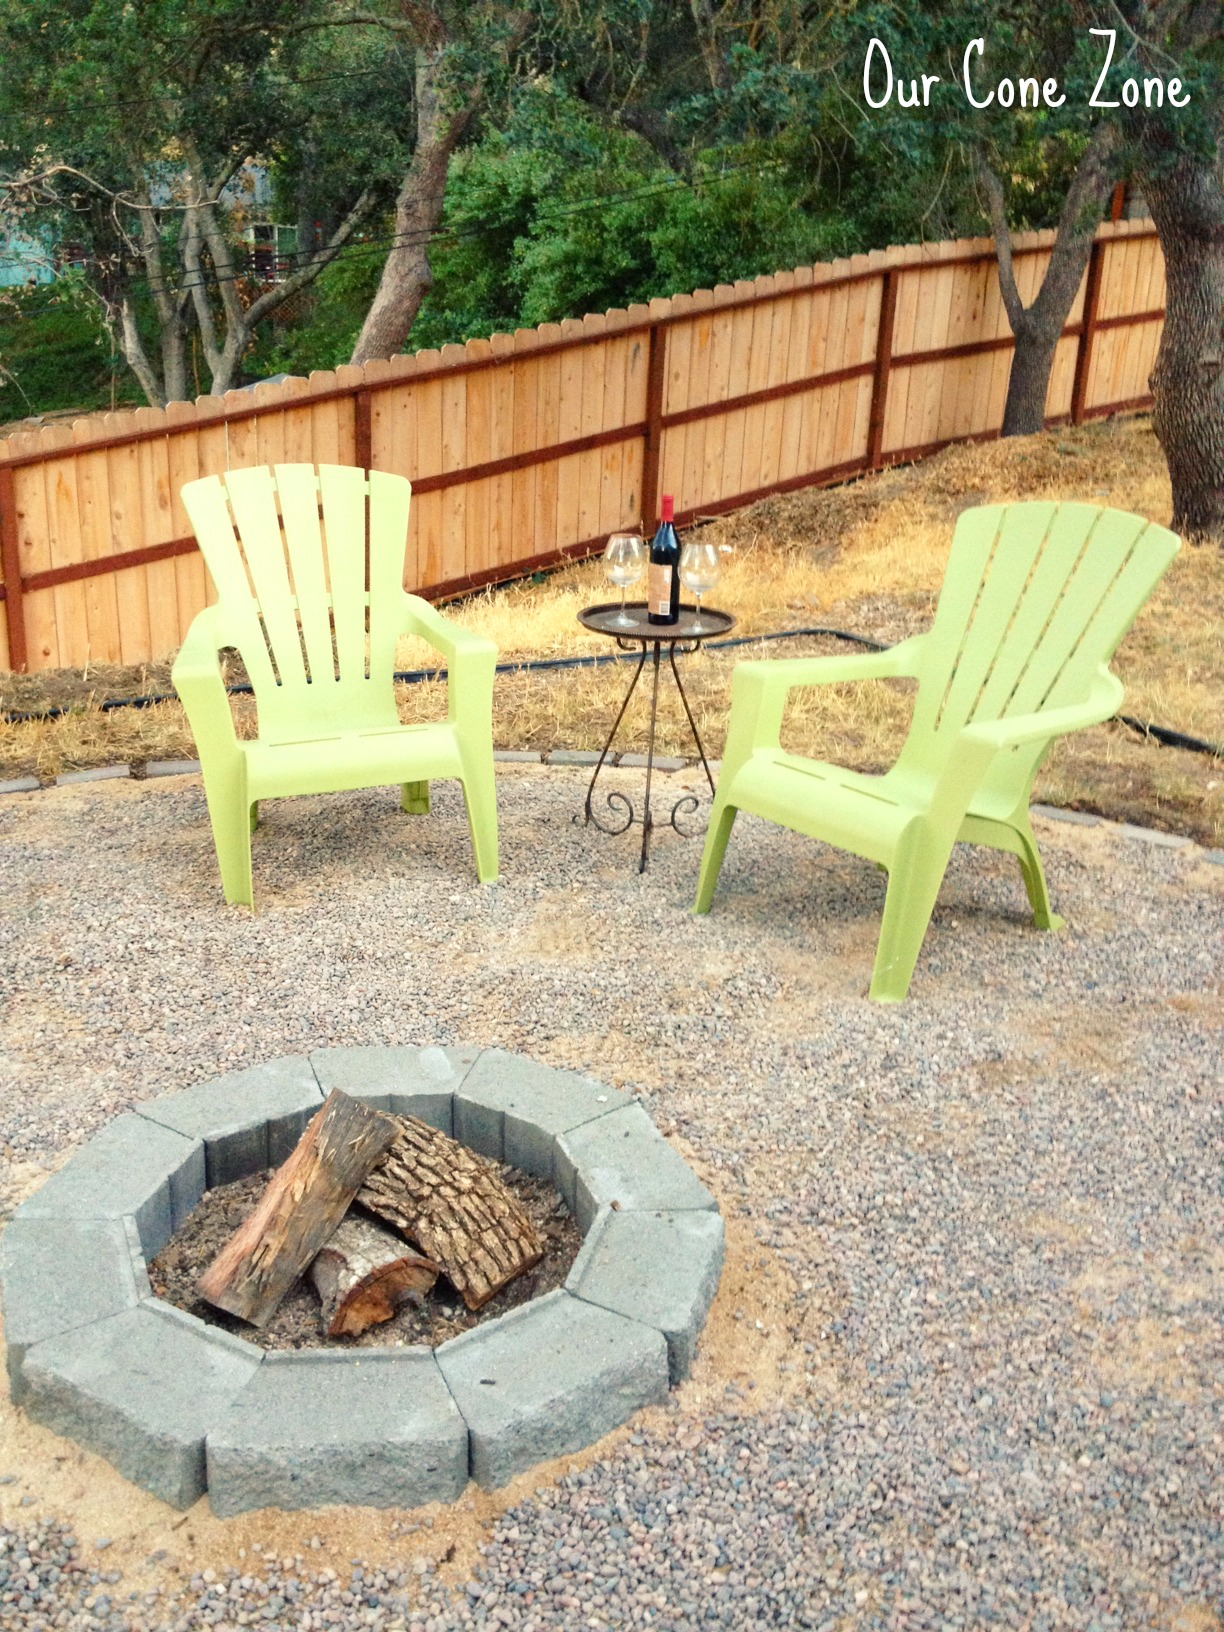 fire pit and adirondack chairs most ergonomic office chair we made a our cone zone